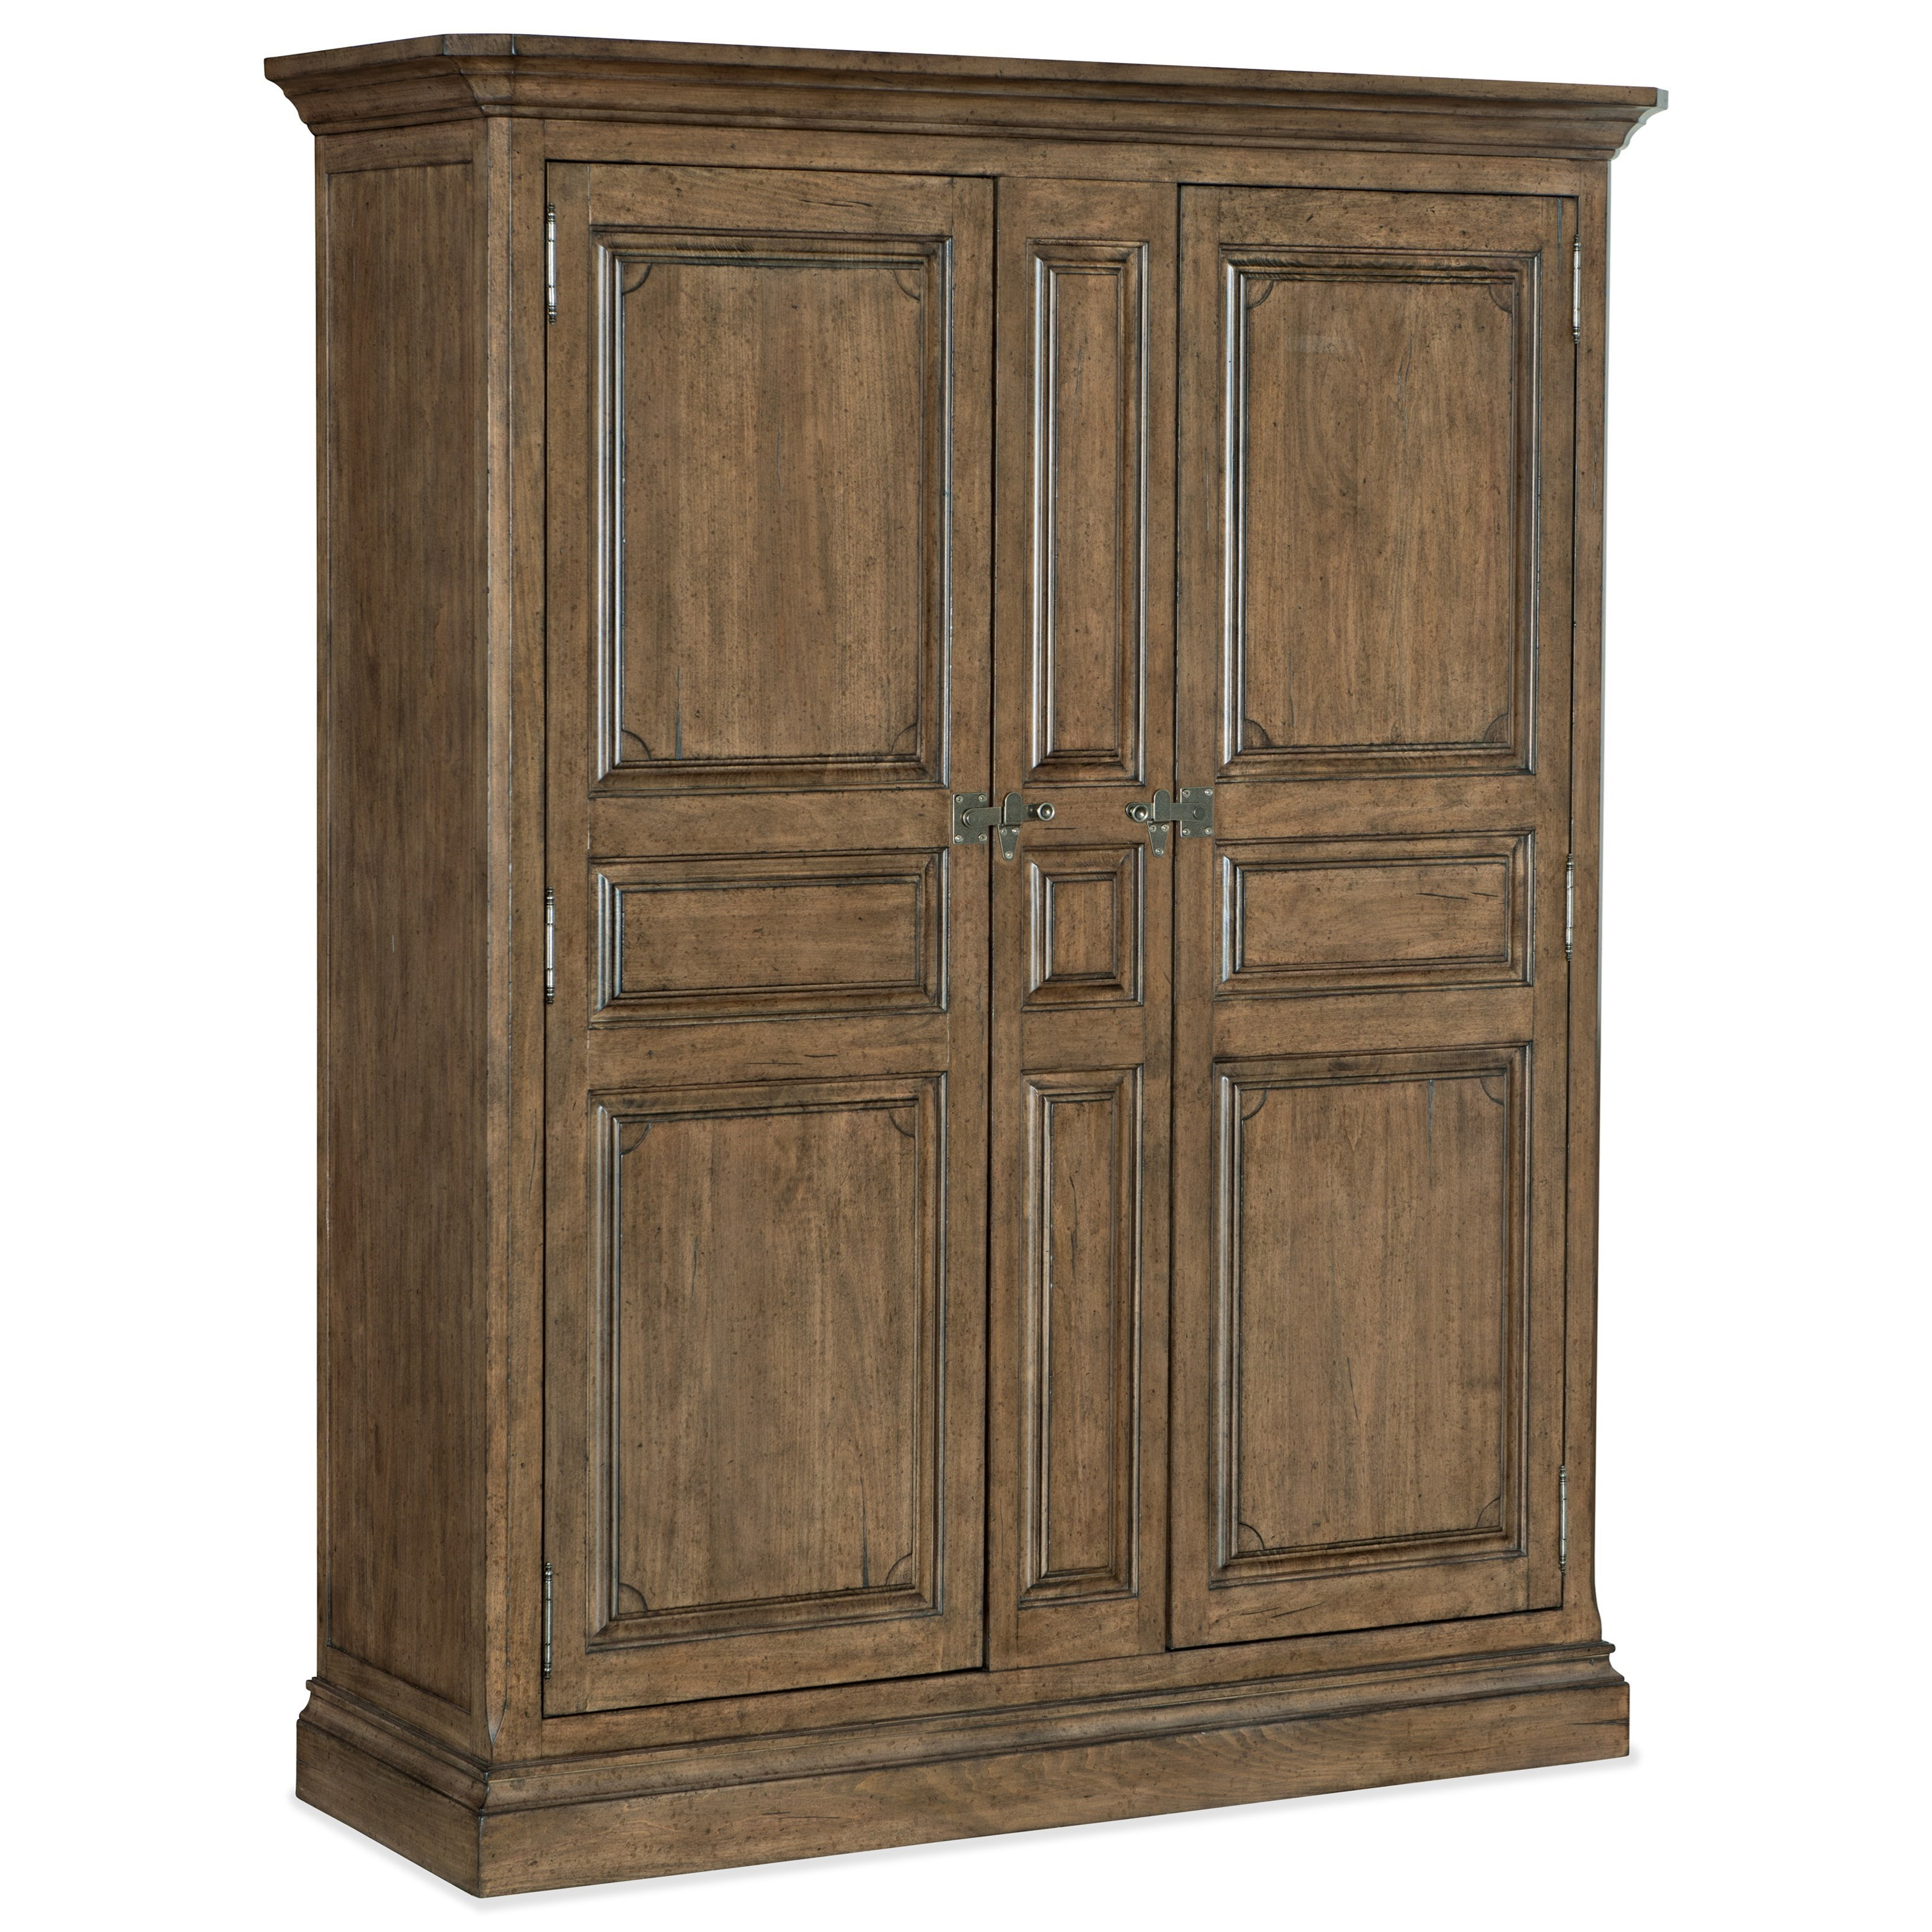 Farmhouse Solid Wood Armoire with Removable Shelves and Closet Rods